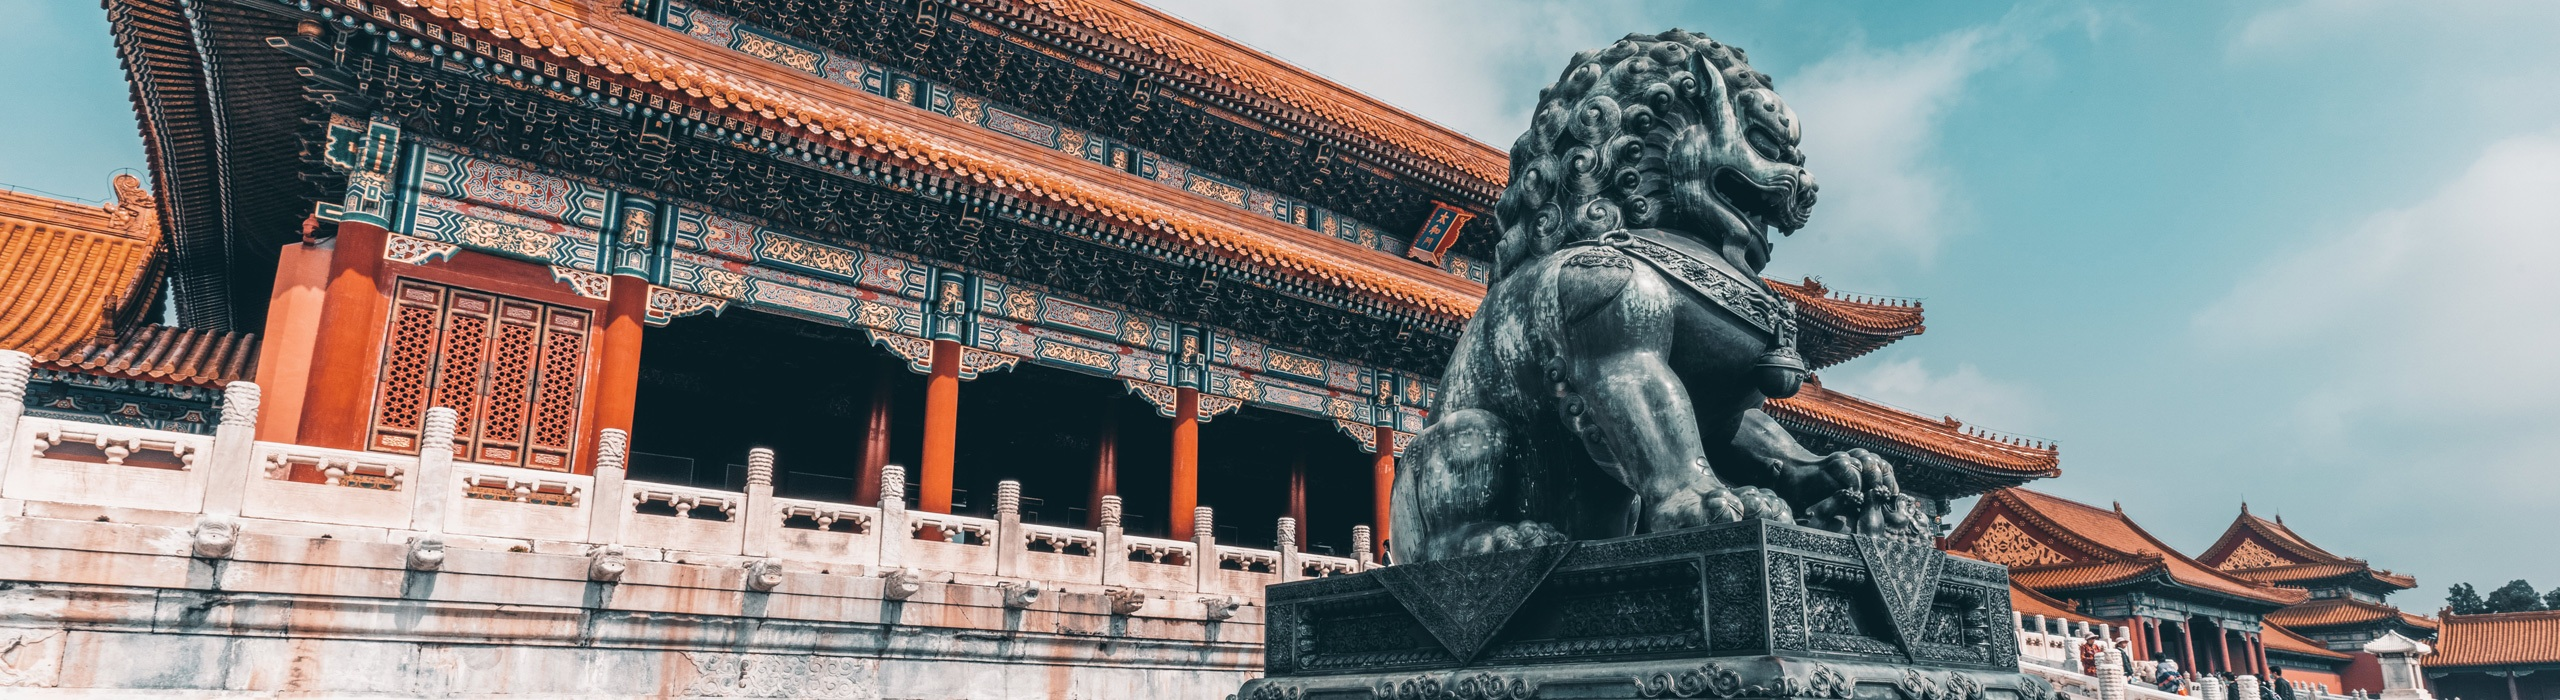 Private, Tailor-made China Tours 2022/2023